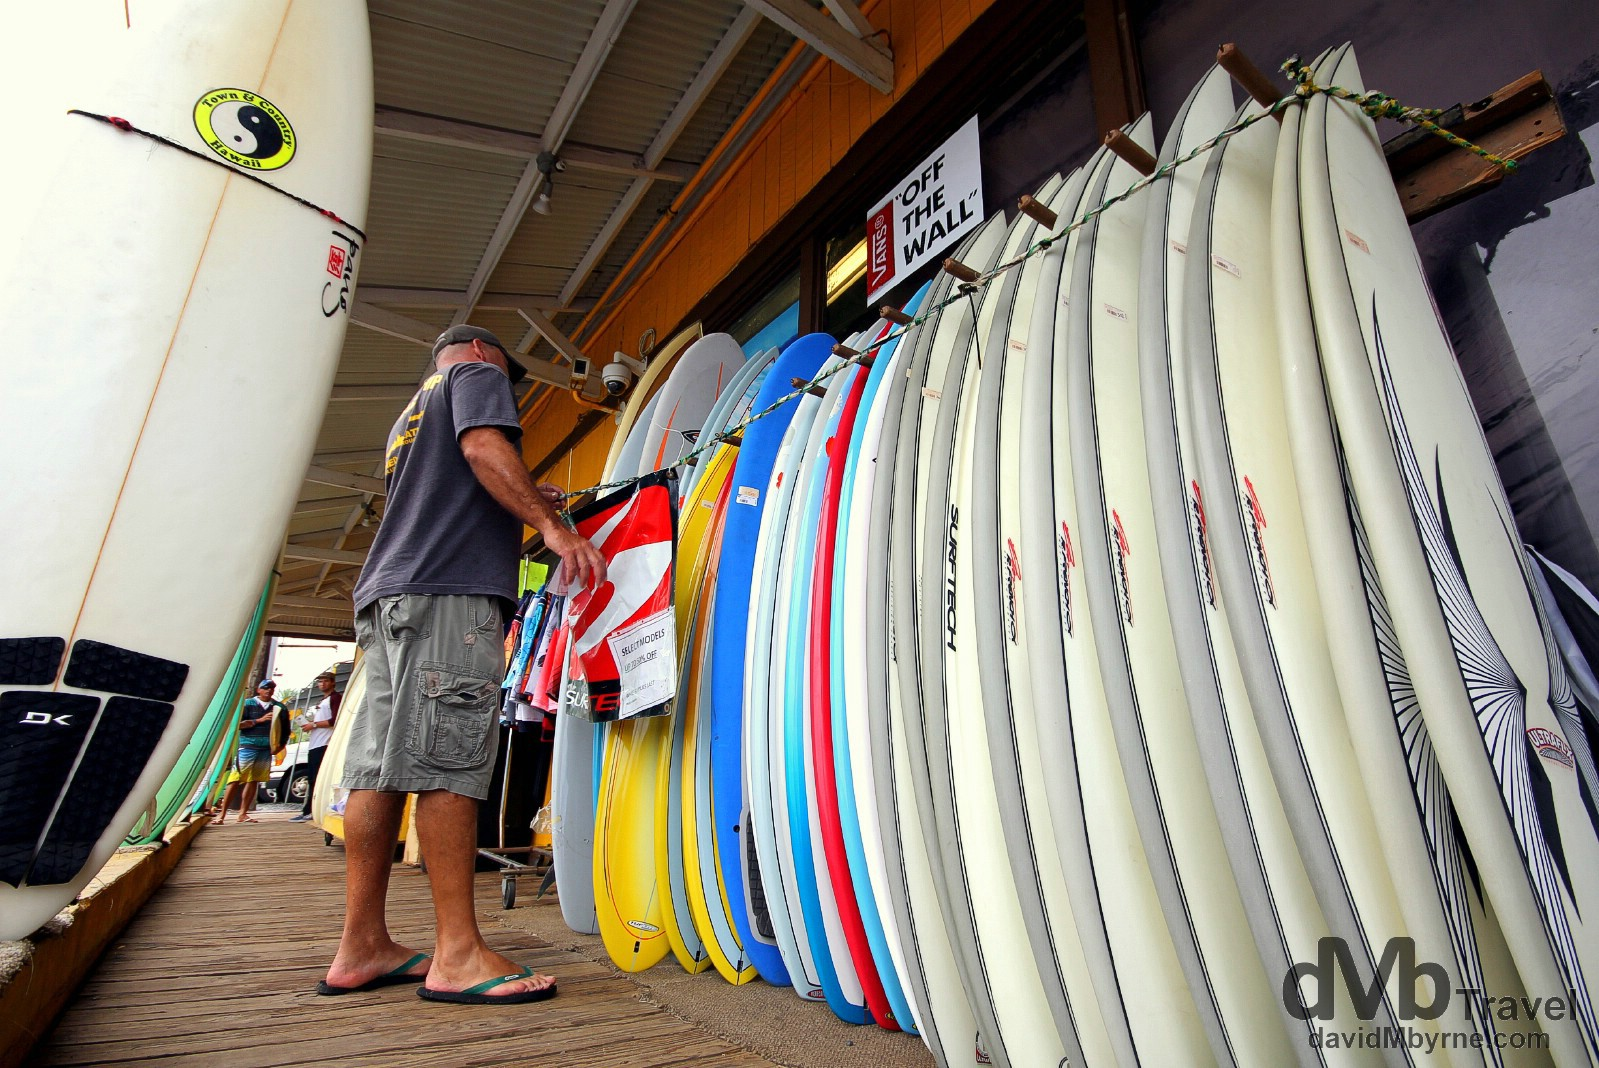 Looking at surf boards outside Surn N Sea, one of the most famous surfing shops in the world. Haleiwa, North Shore, Oahu, Hawaii. March 10th 2013.